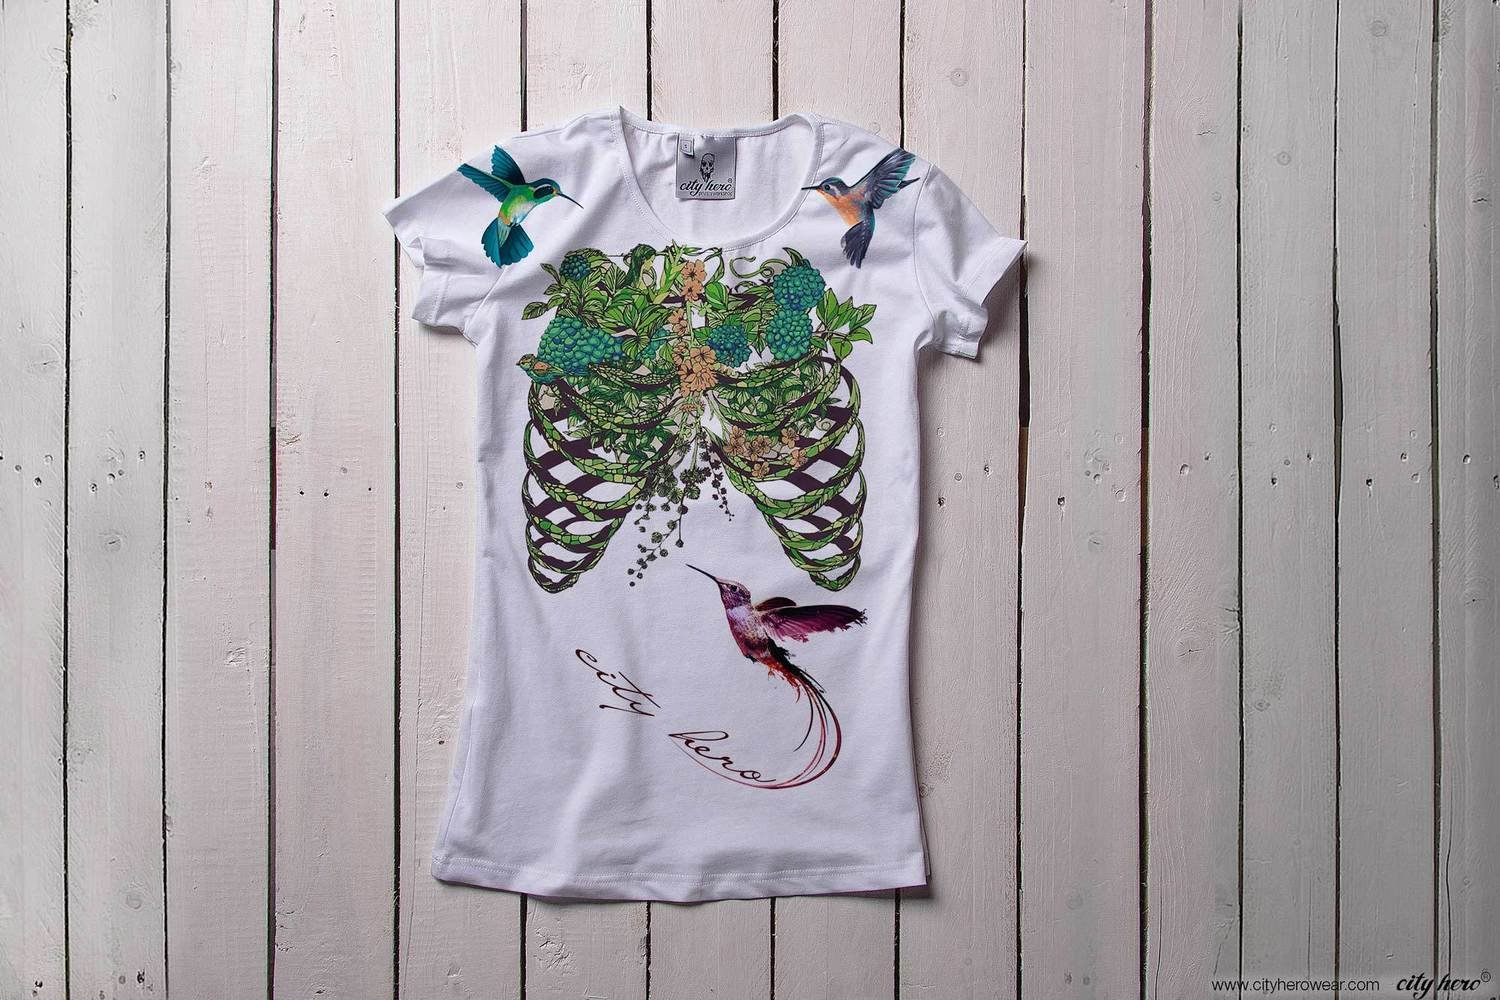 Flourish soul [T-SHIRT WOMEN]